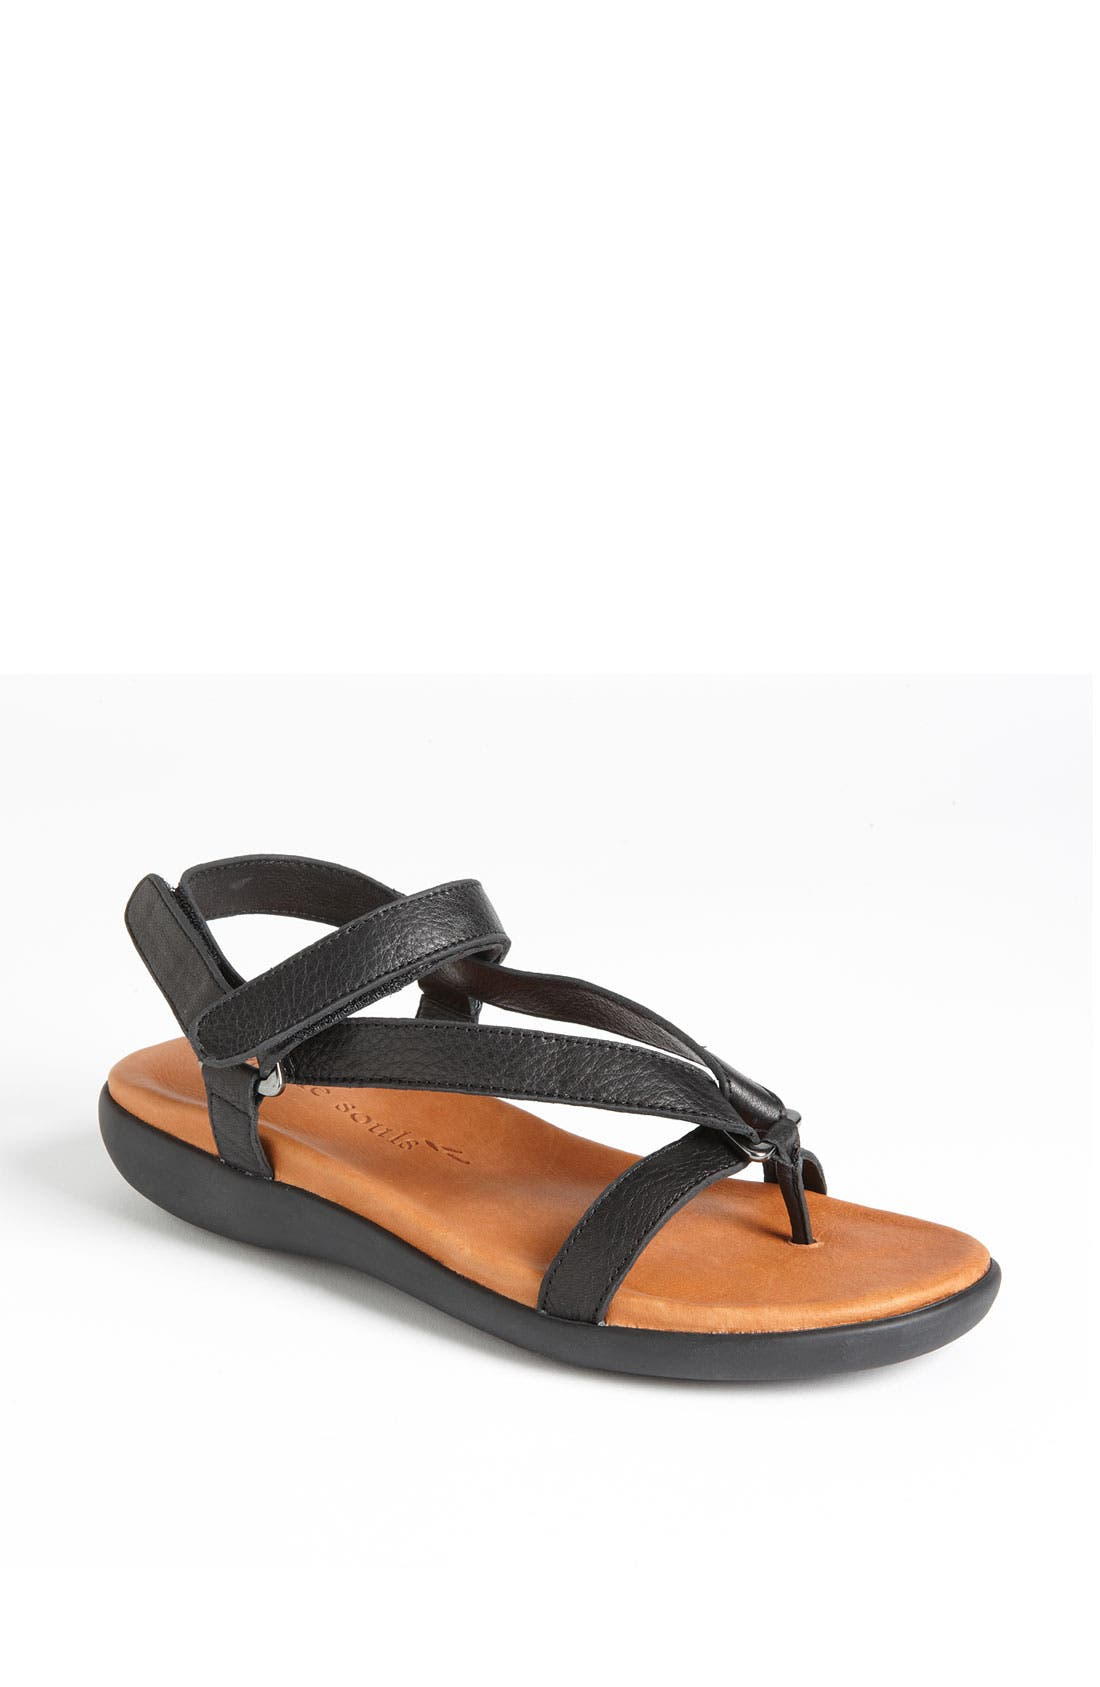 Gentle Souls 'Go Mingle' Sandal, Main, color, 001